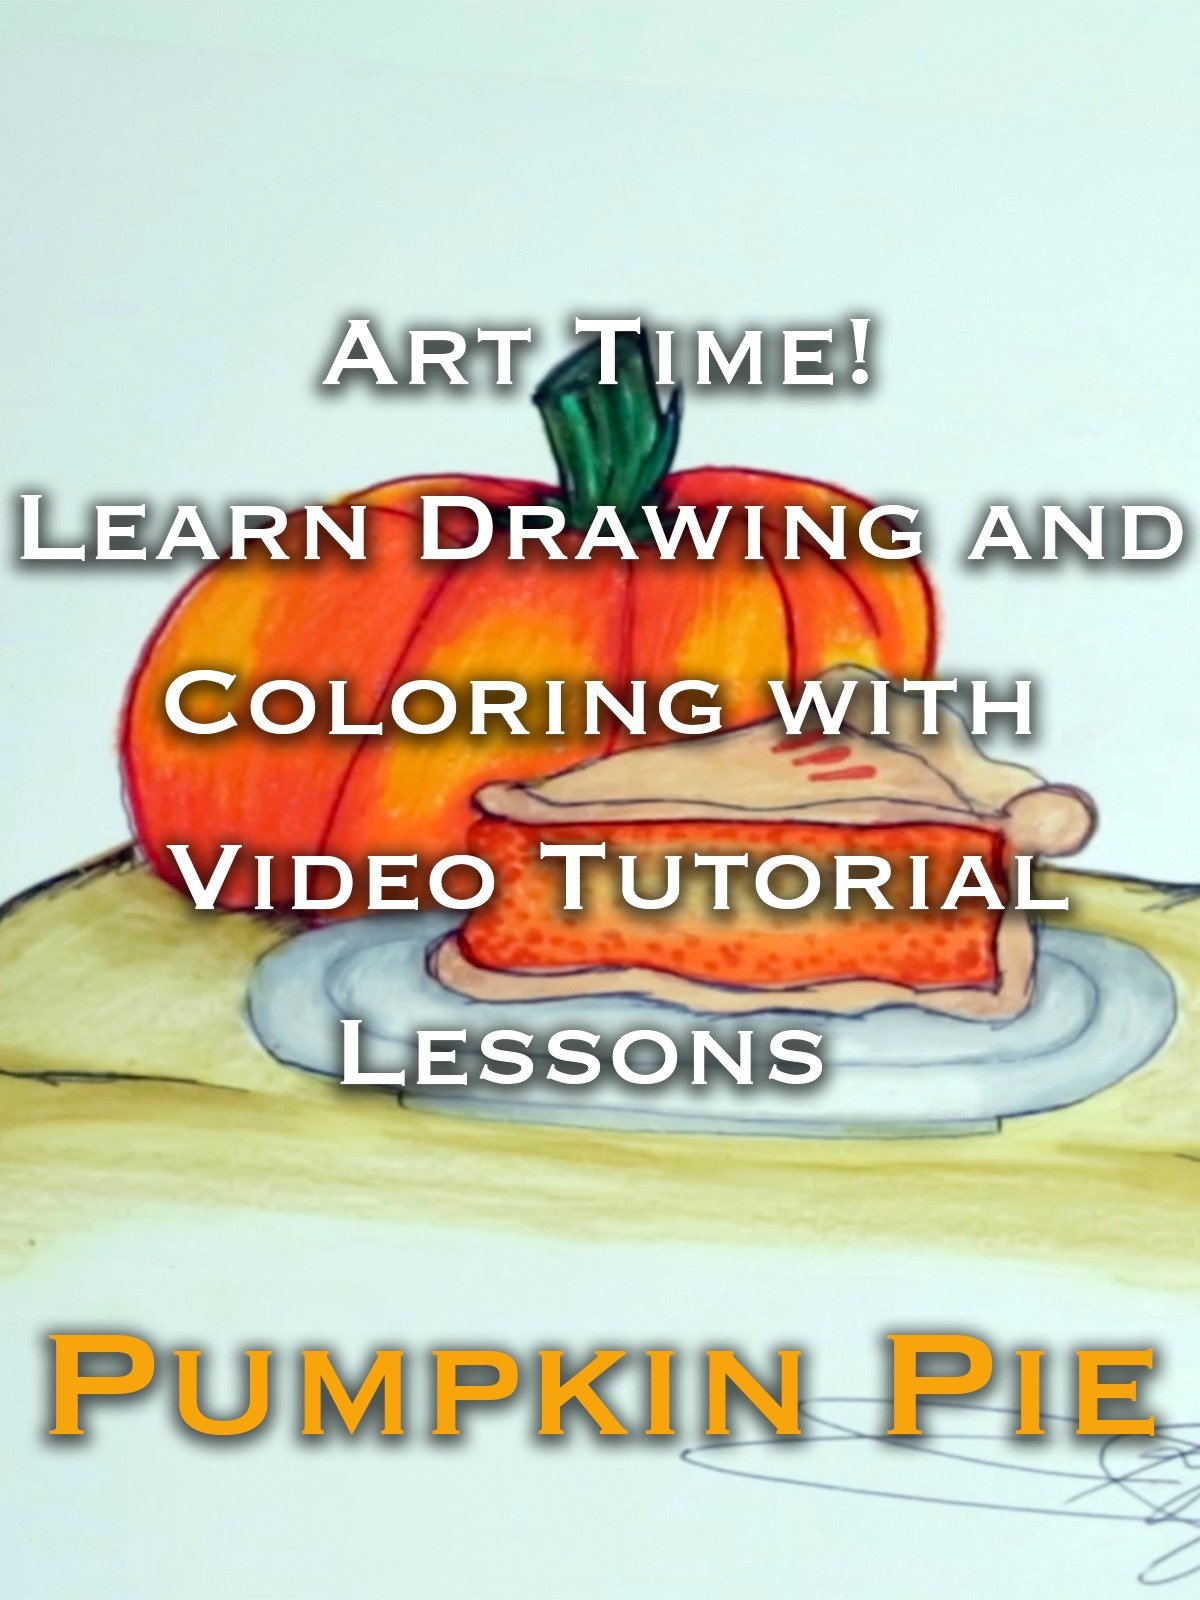 Art Time! Learn Drawing and Coloring with Video Tutorial Lessons Pumpkin Pie